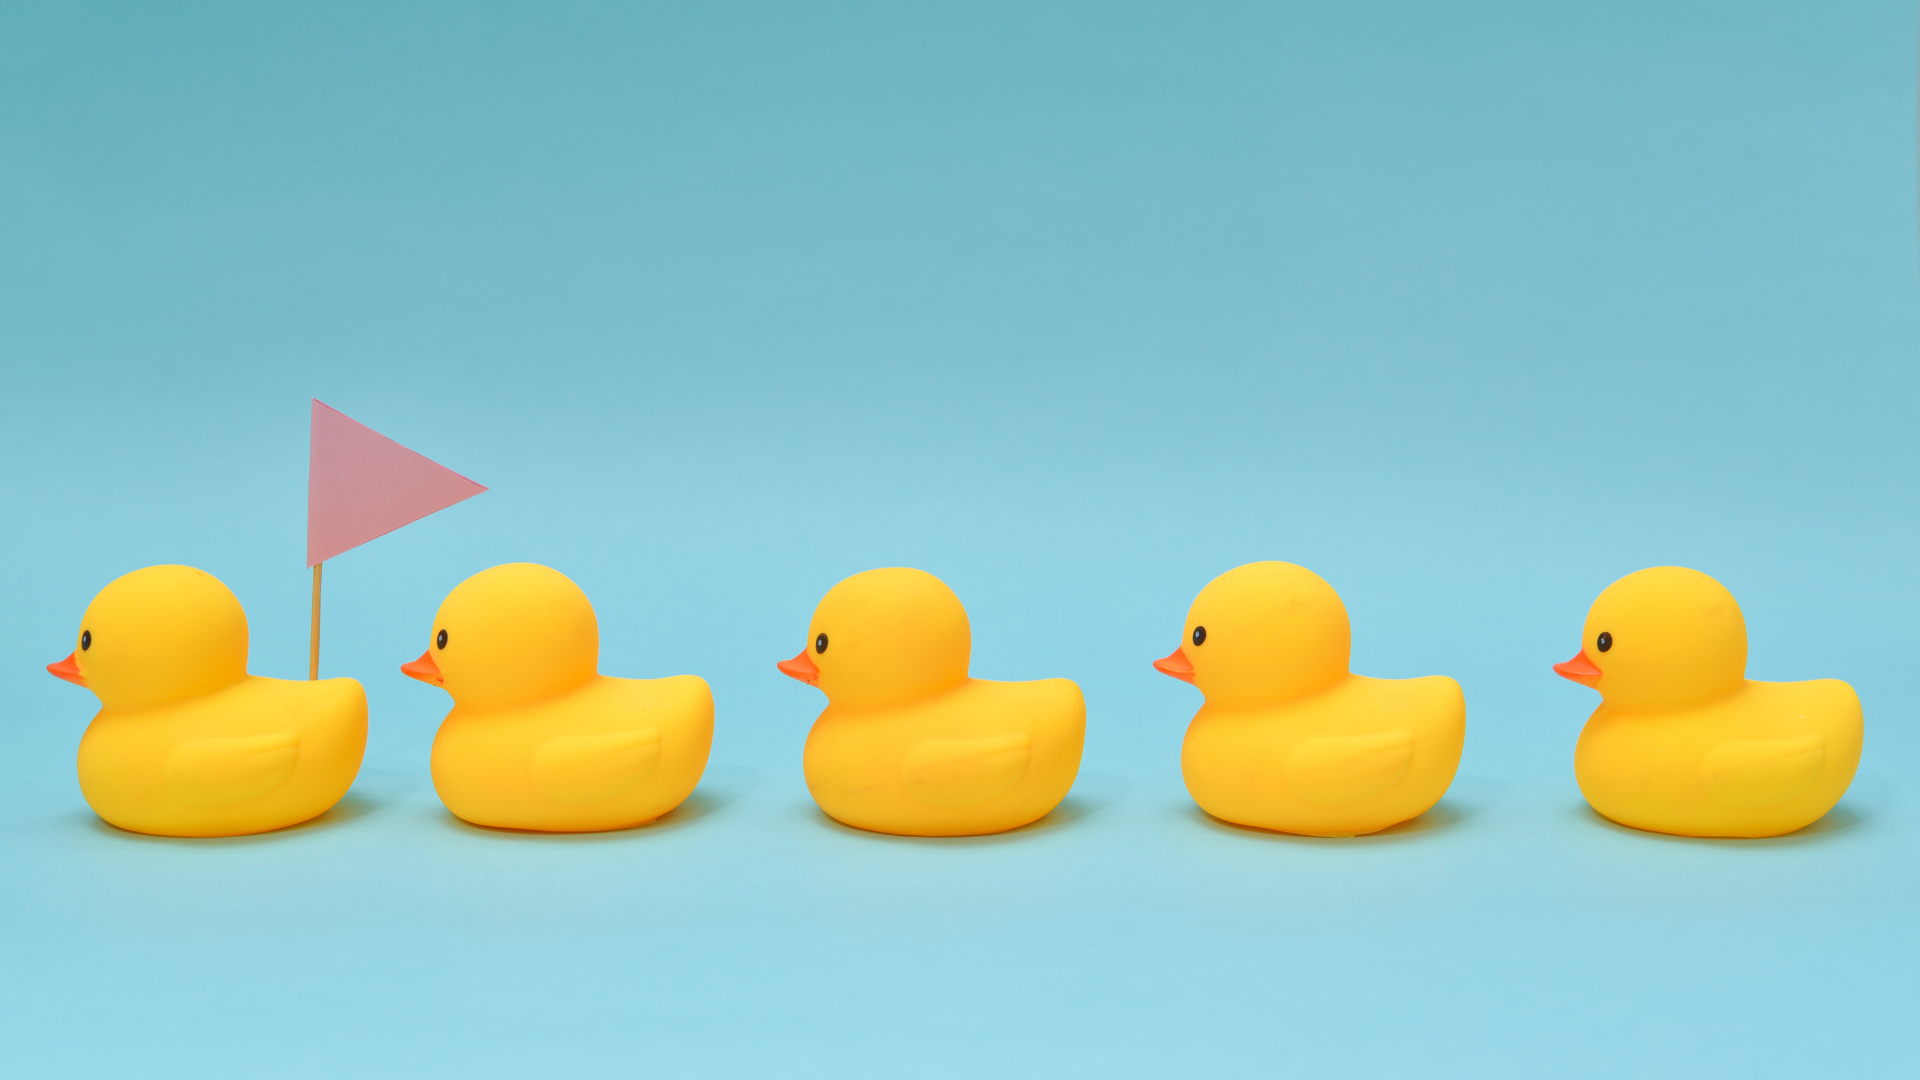 line-of-rubber-ducks-following-each-other-with-red-flag-on-blue-background